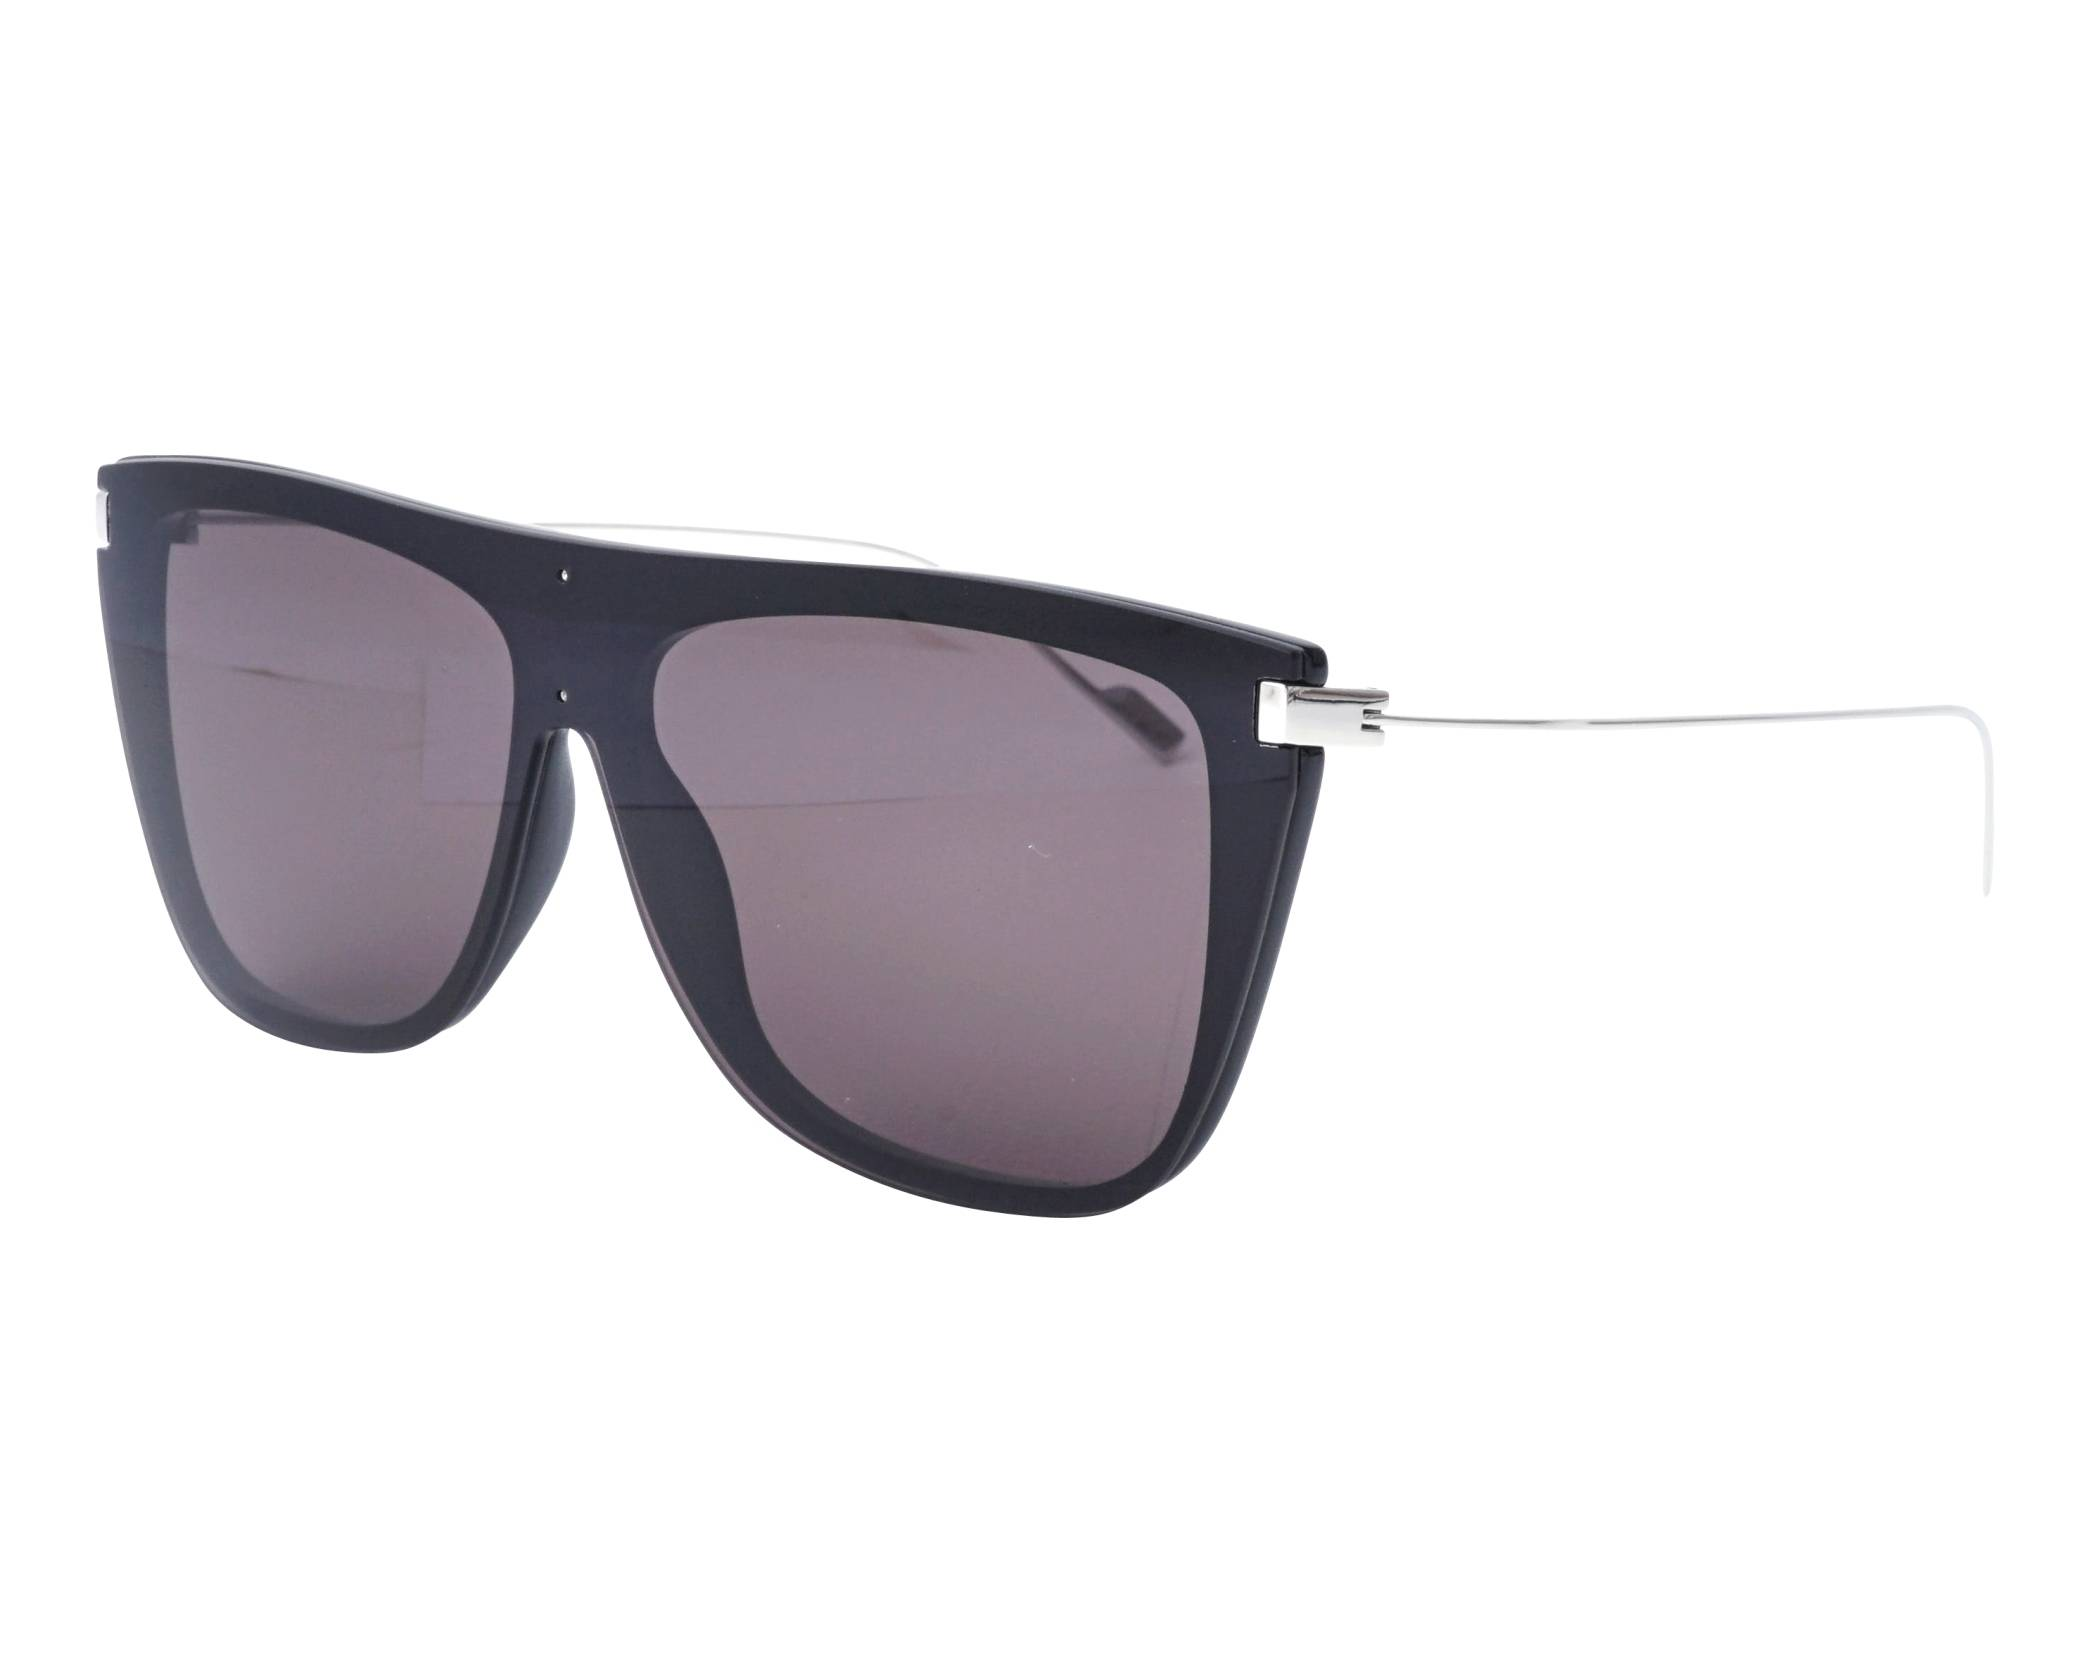 9b14b9e62f3 Sunglasses Yves Saint Laurent SL-1-T 001 65-16 Black Silver profile